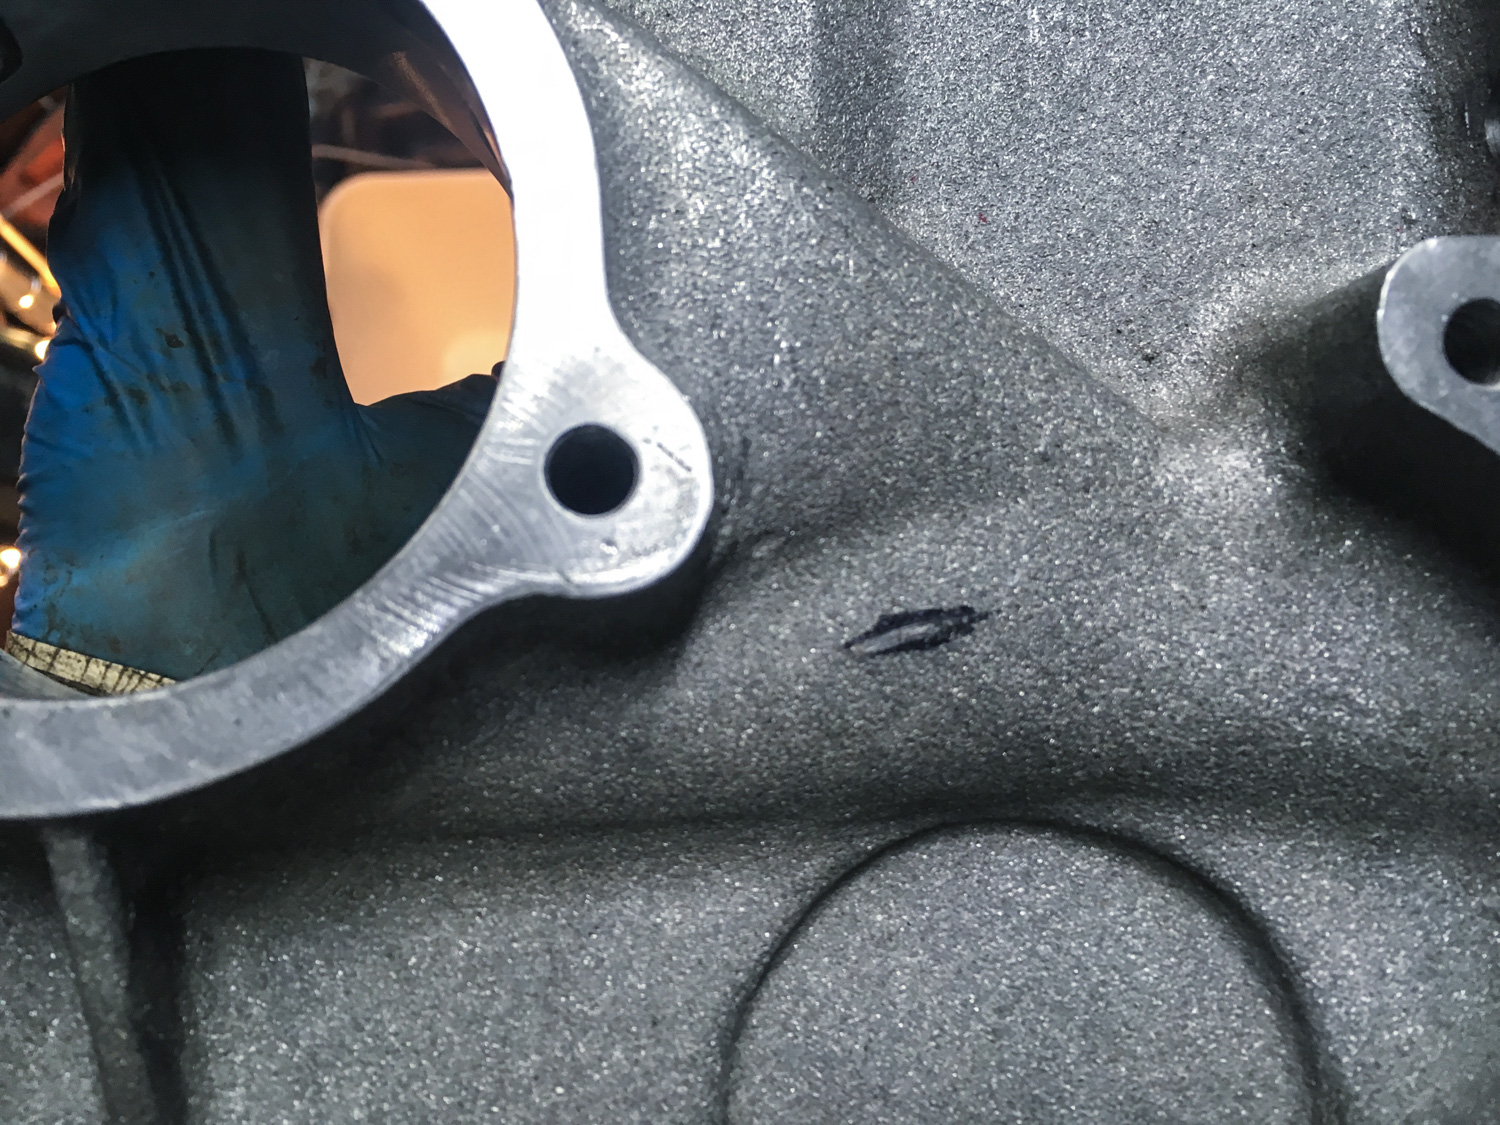 The result of a little light grinding to remove a jackshaft gear clearance issue.